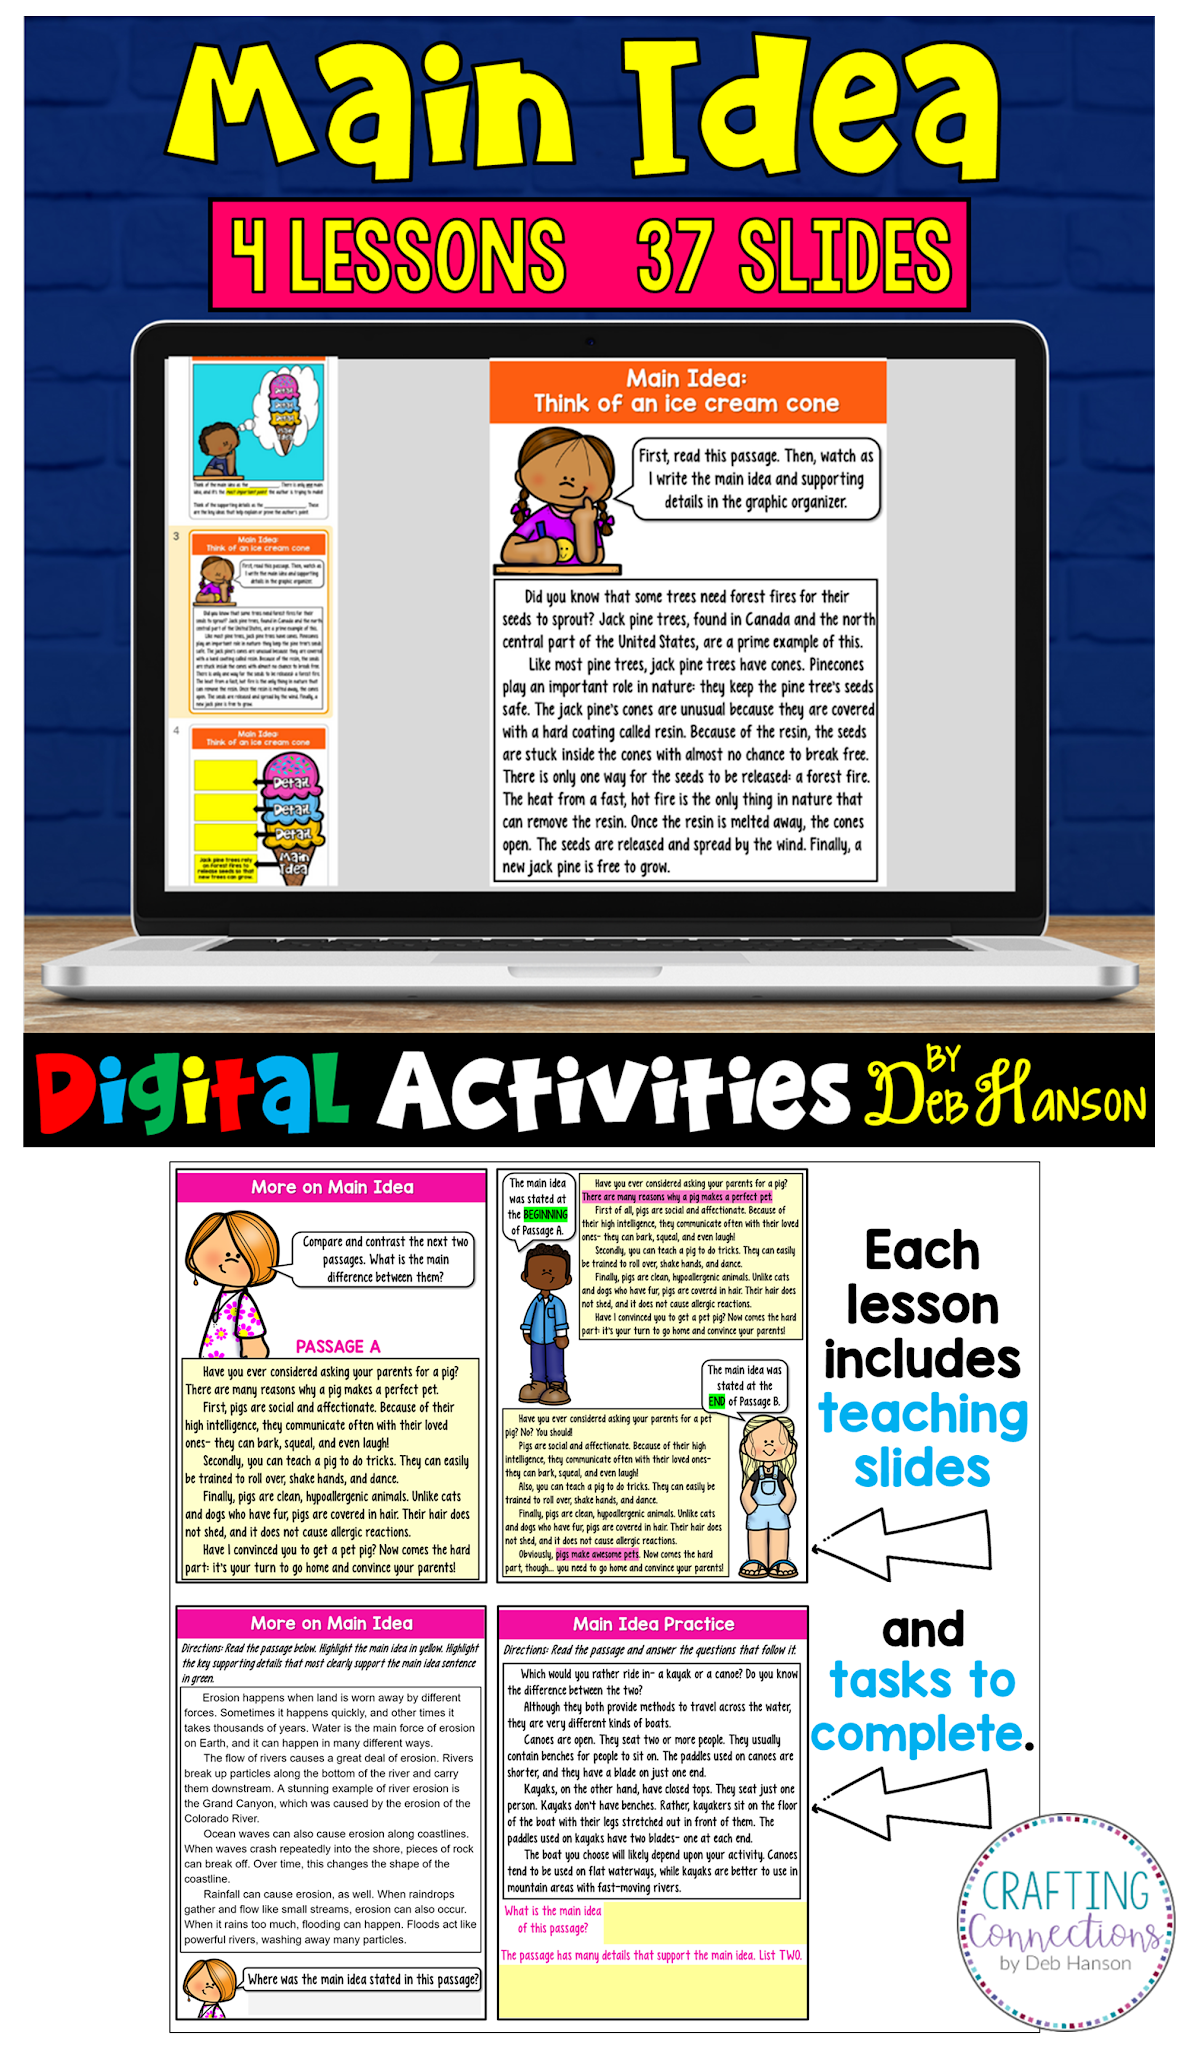 Check out Deb's teach-and-task lessons. They include both instructional slides and practice slides for students. Pictured here are some slides from my main idea set, but I have lessons for twelve different ELA topics.